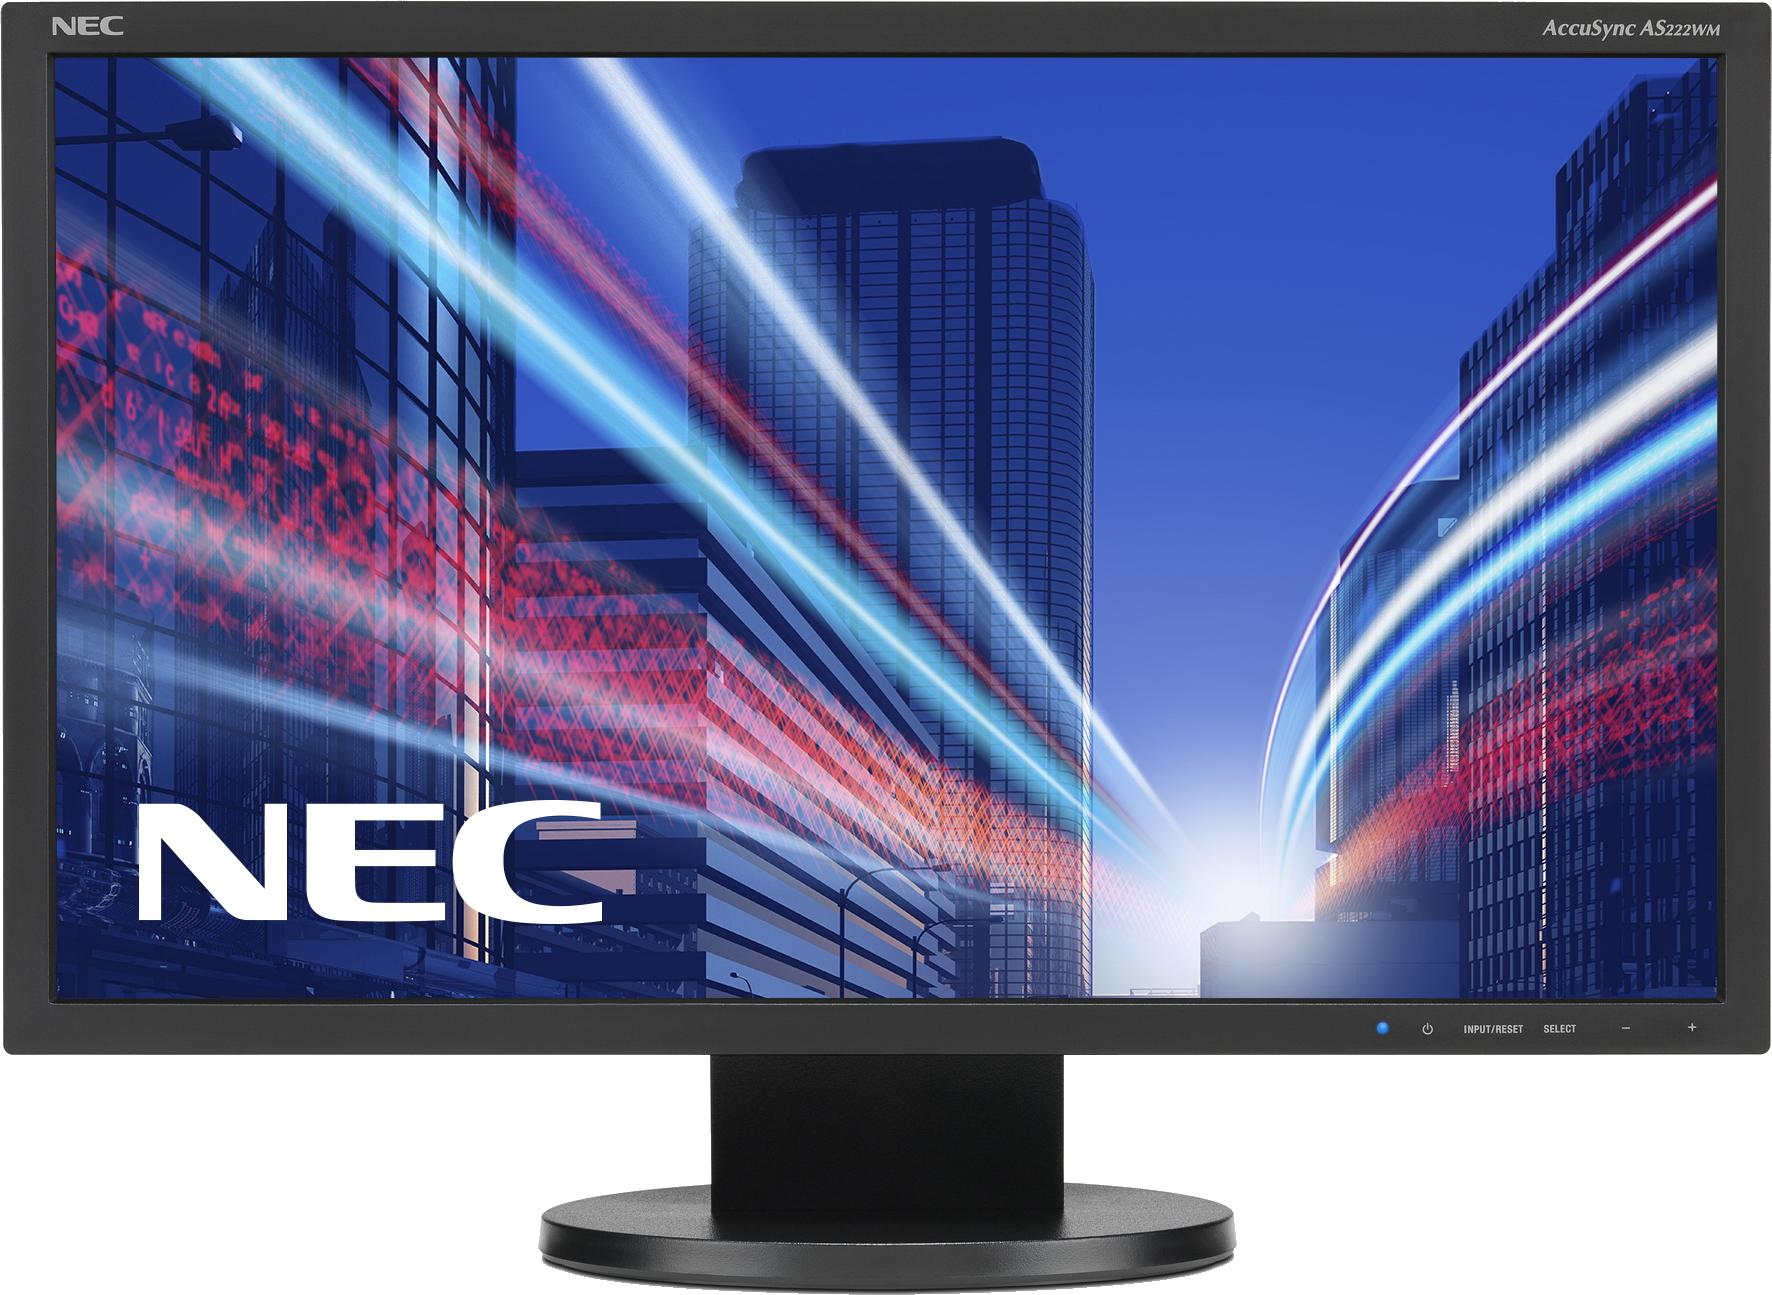 NEC AS222WM